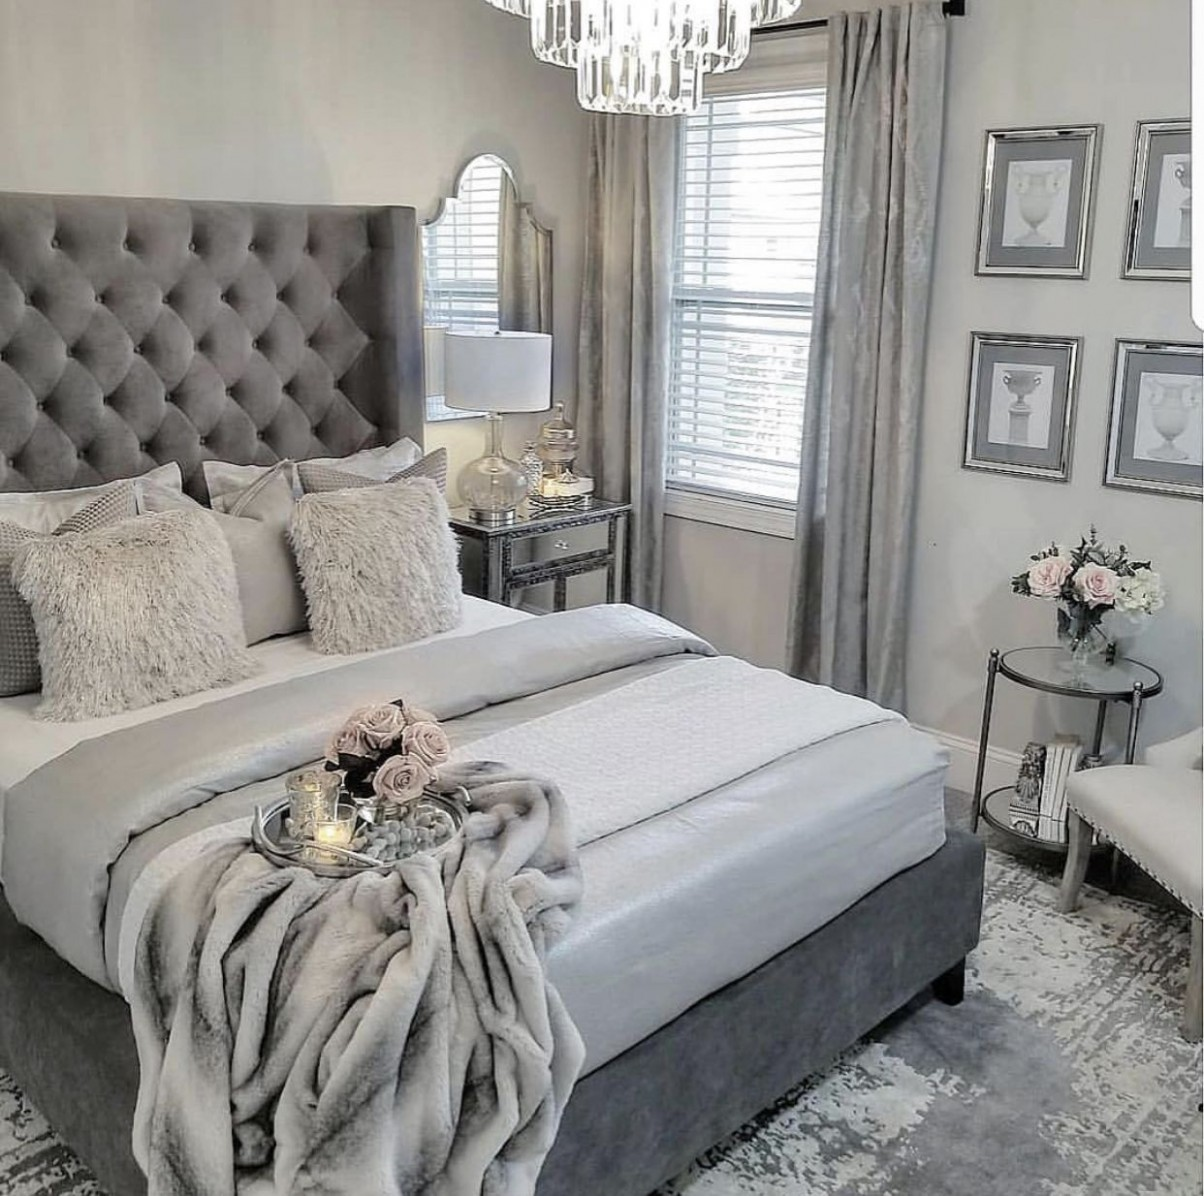 Most Popular grey decorating ideas for hallway for 12  Bedroom  - Bedroom Ideas Grey Bed